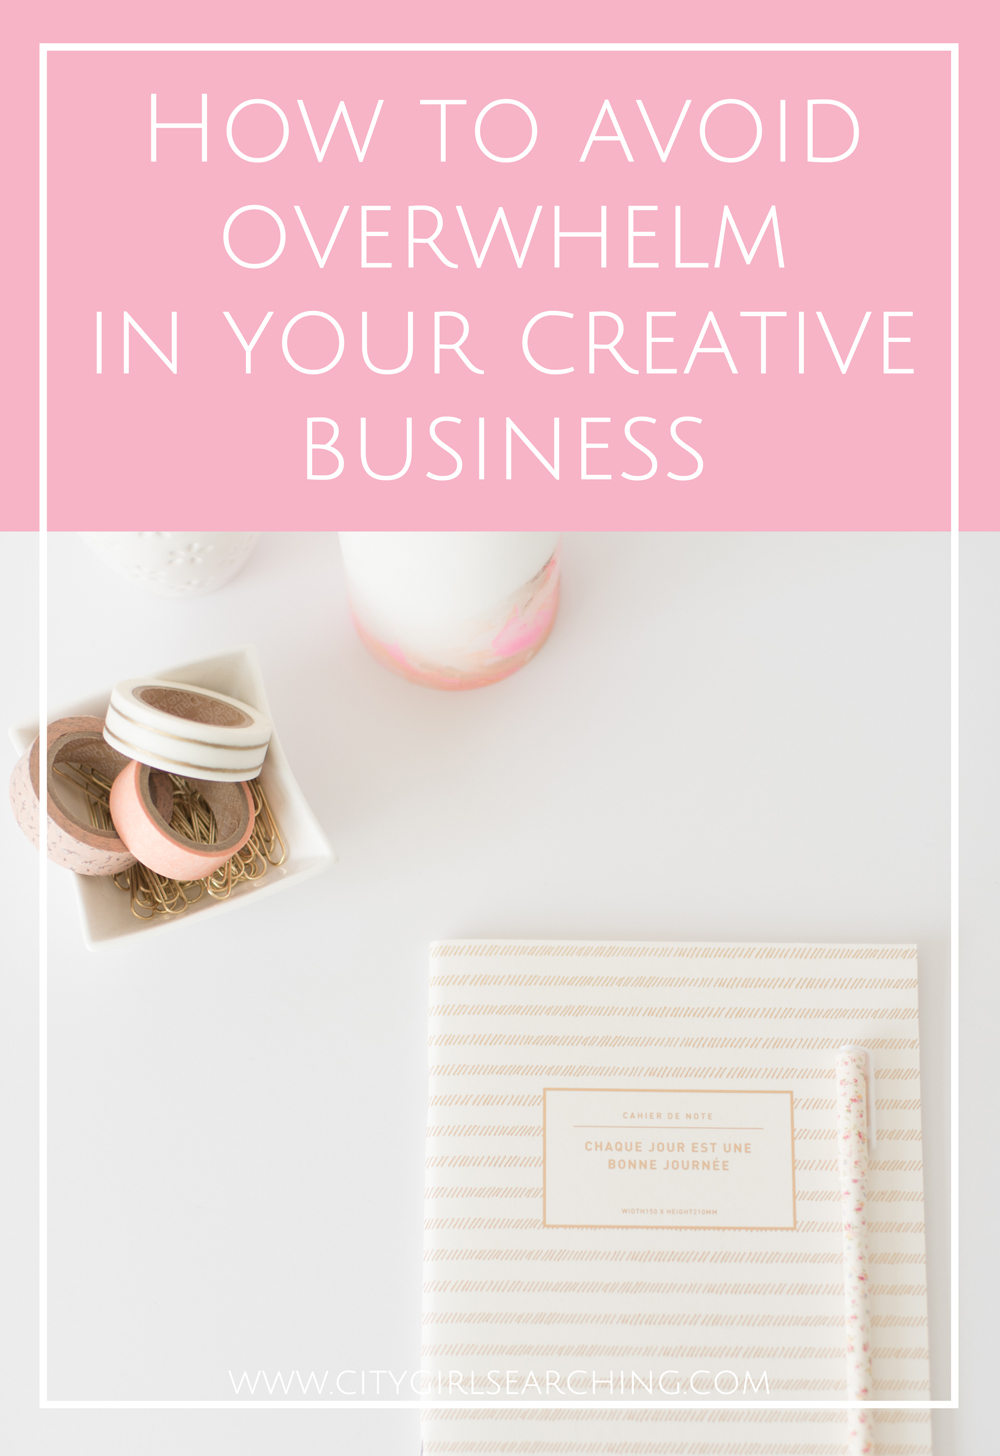 How to avoid overwhelm in your creative business free checklist citygirlsearching